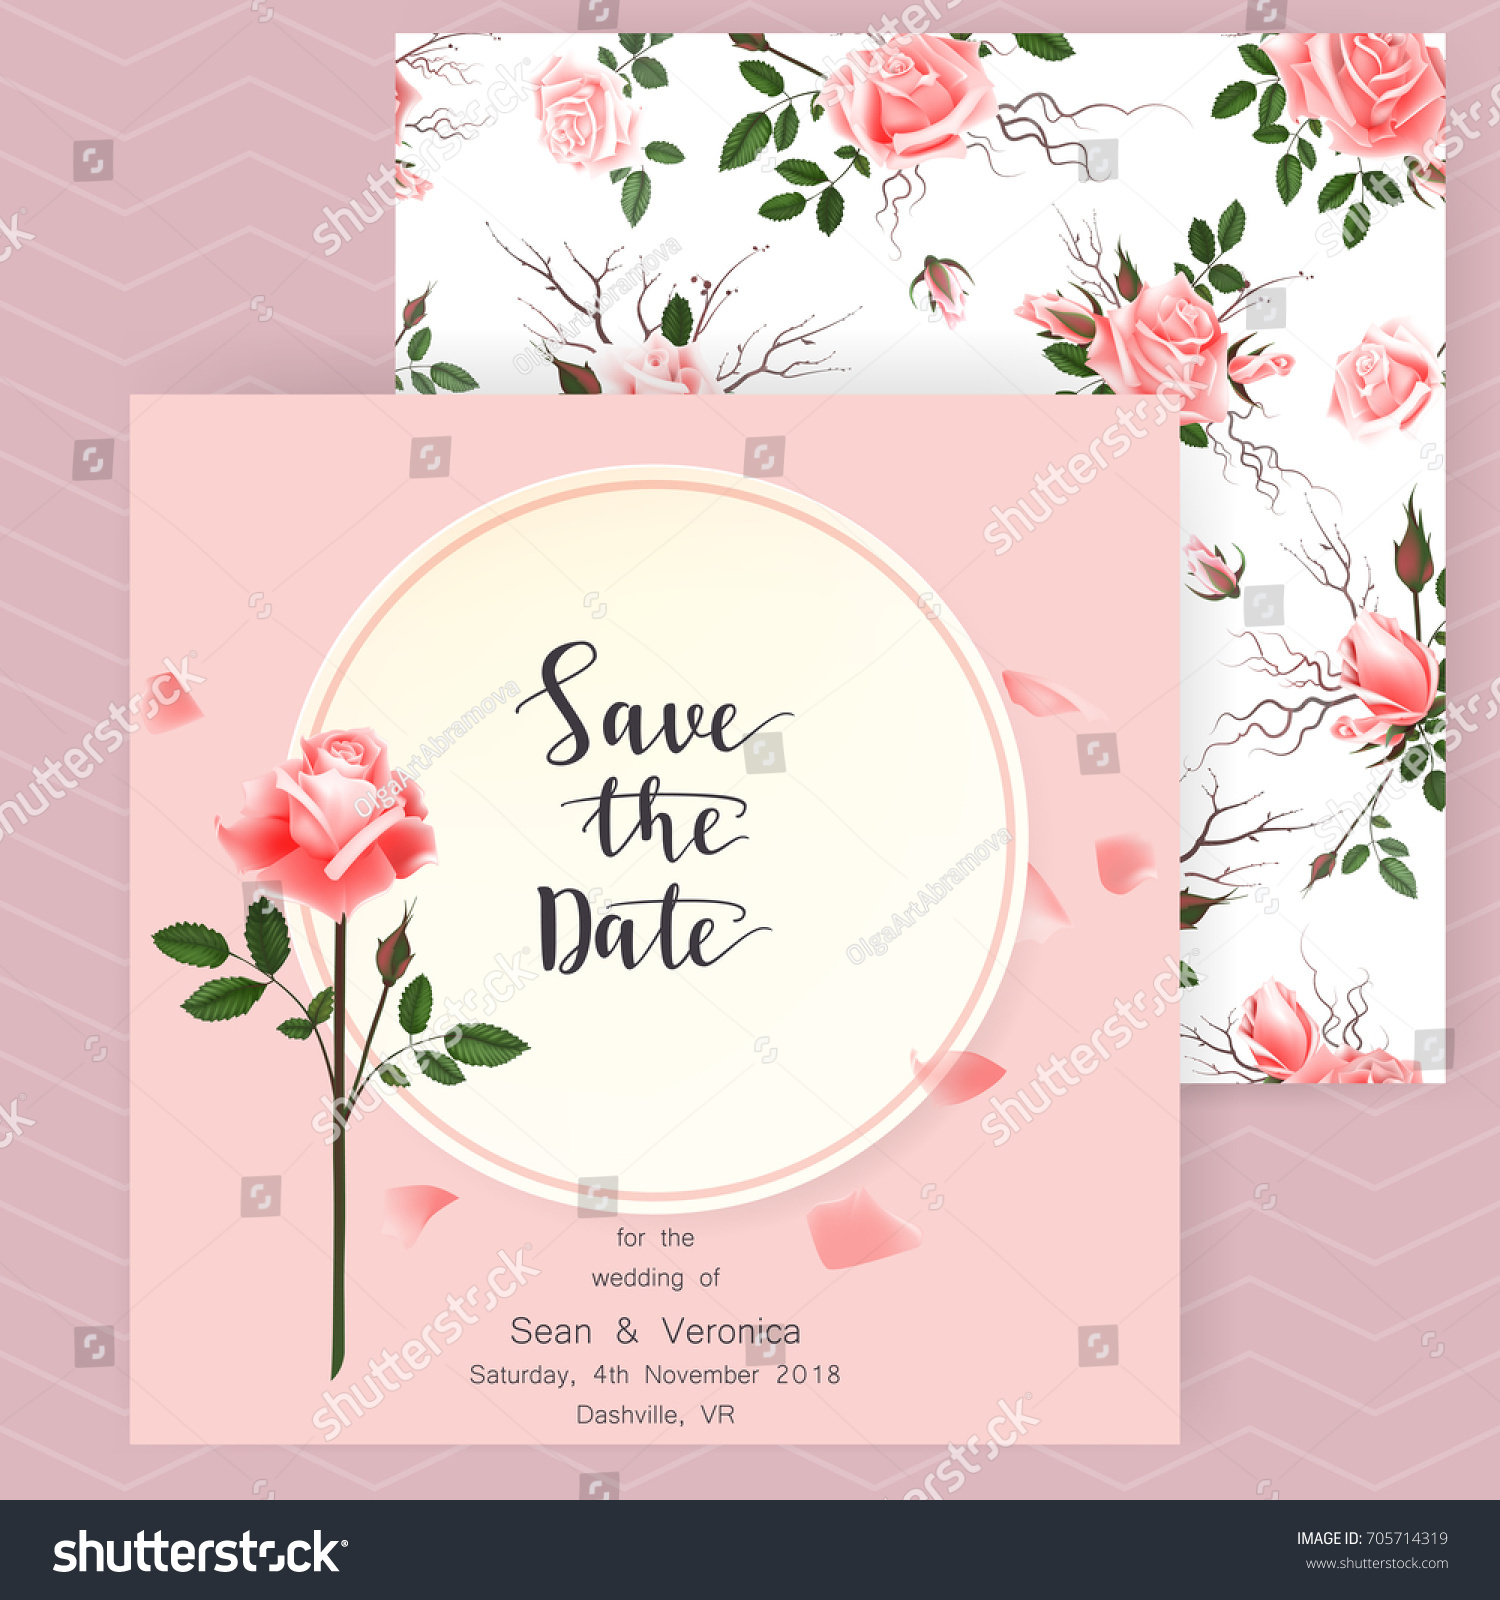 Save Date Card Wedding Invitation Greeting Stock Vector 705714319 ...